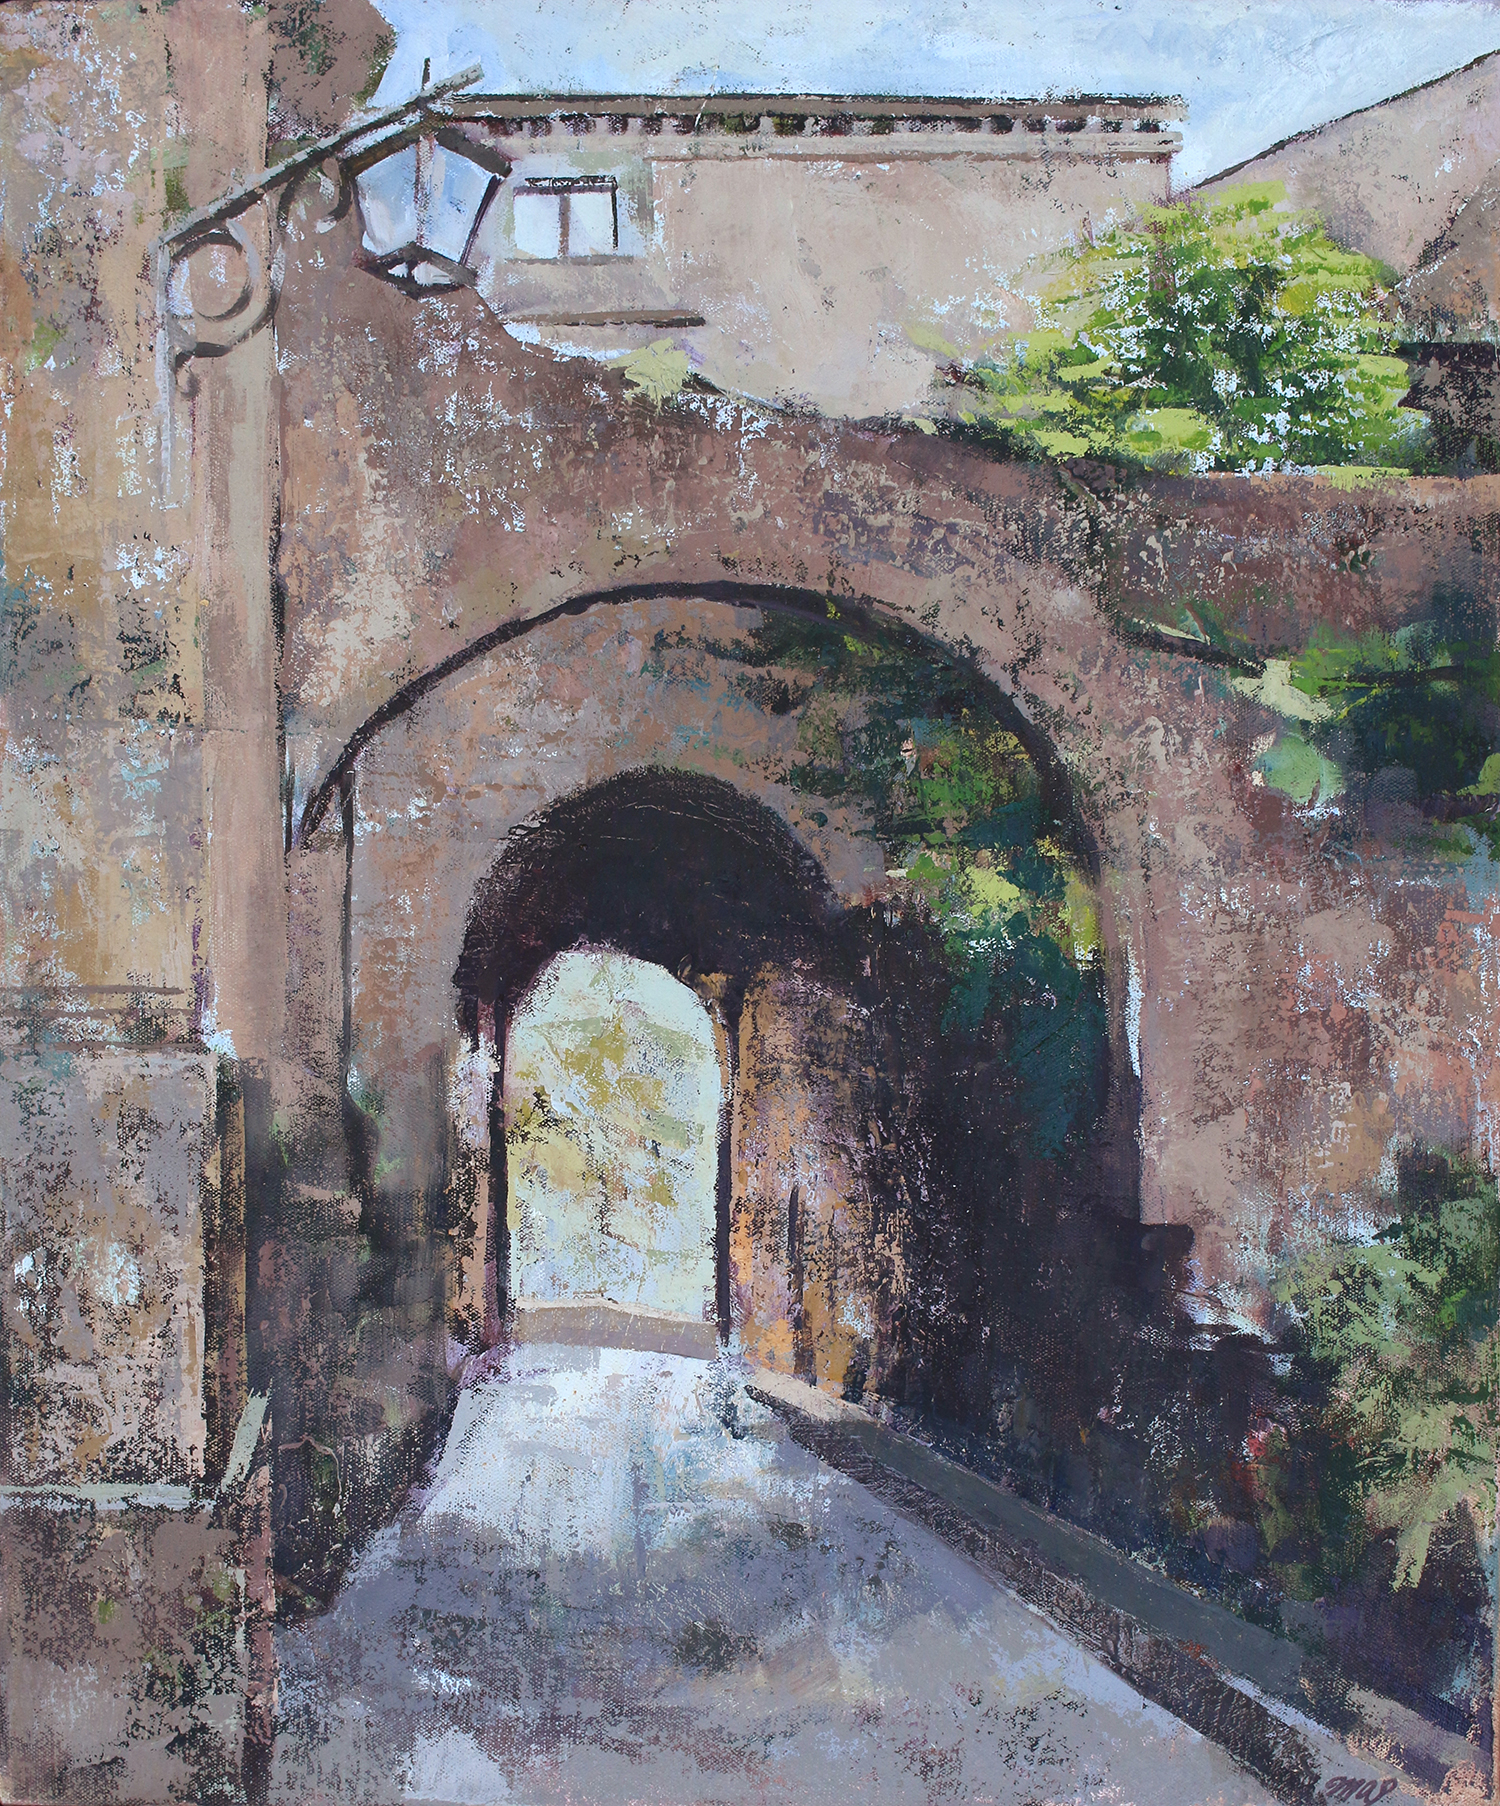 Bagnoregio Painting: Memories and Layers